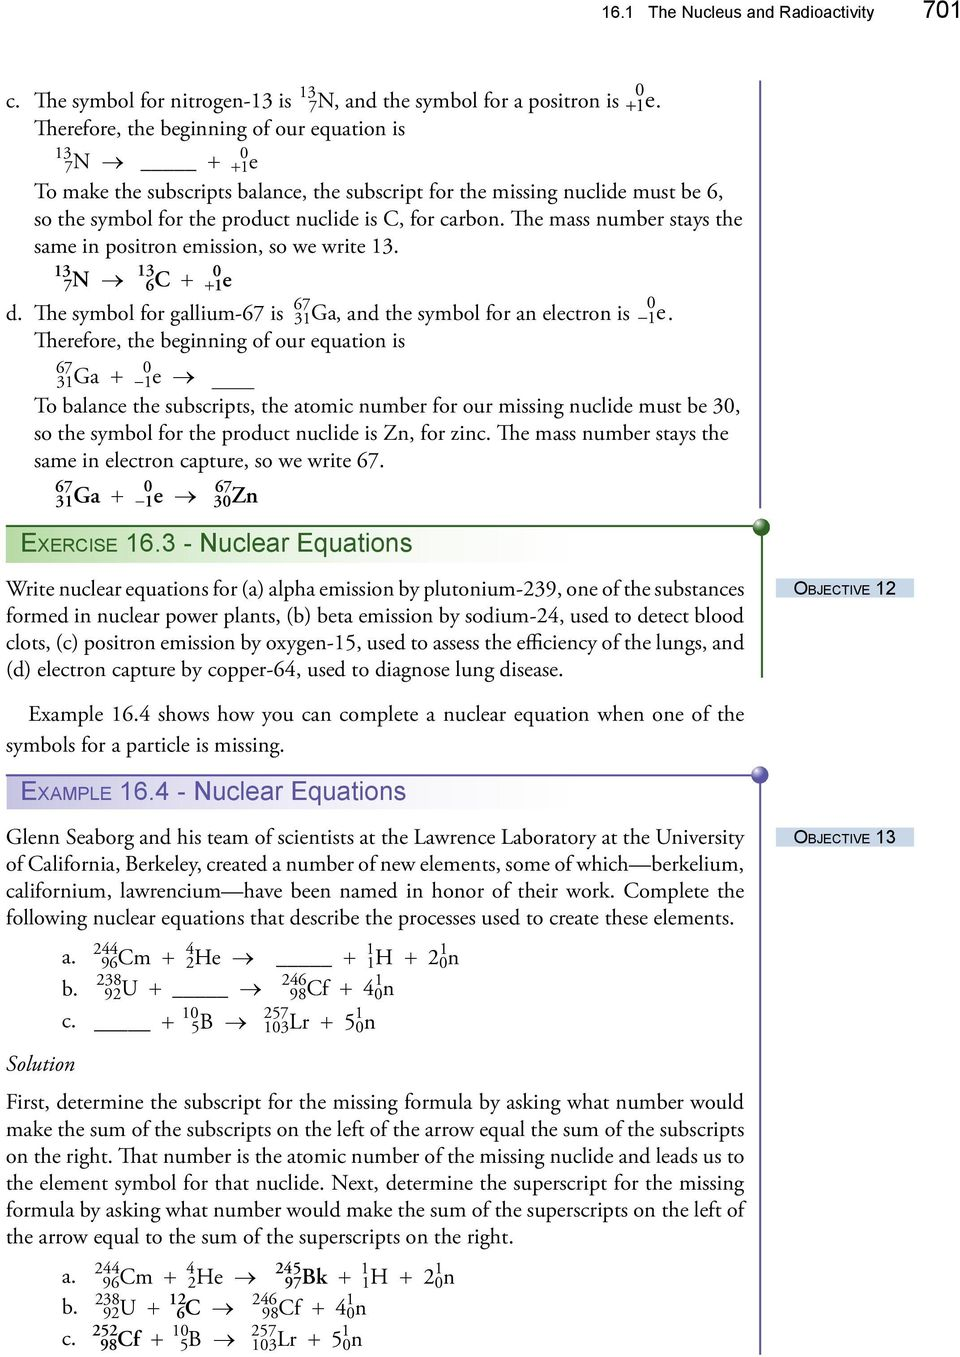 Chapter The Nucleus And Radioactivity Uses Of Radioactive Substances